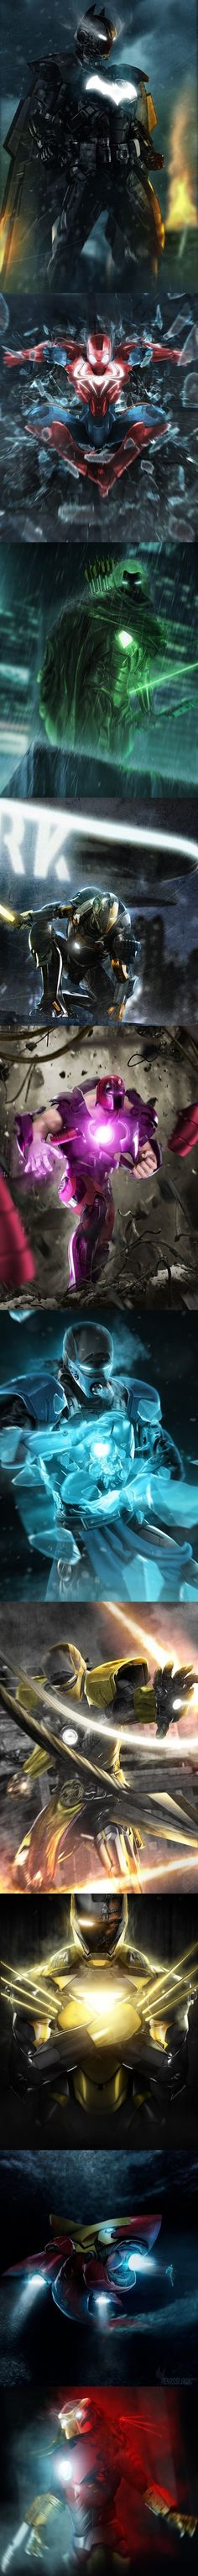 Iron Man Mashups- can I just say the thought of a wolverine iron man suit gives me goose bumps